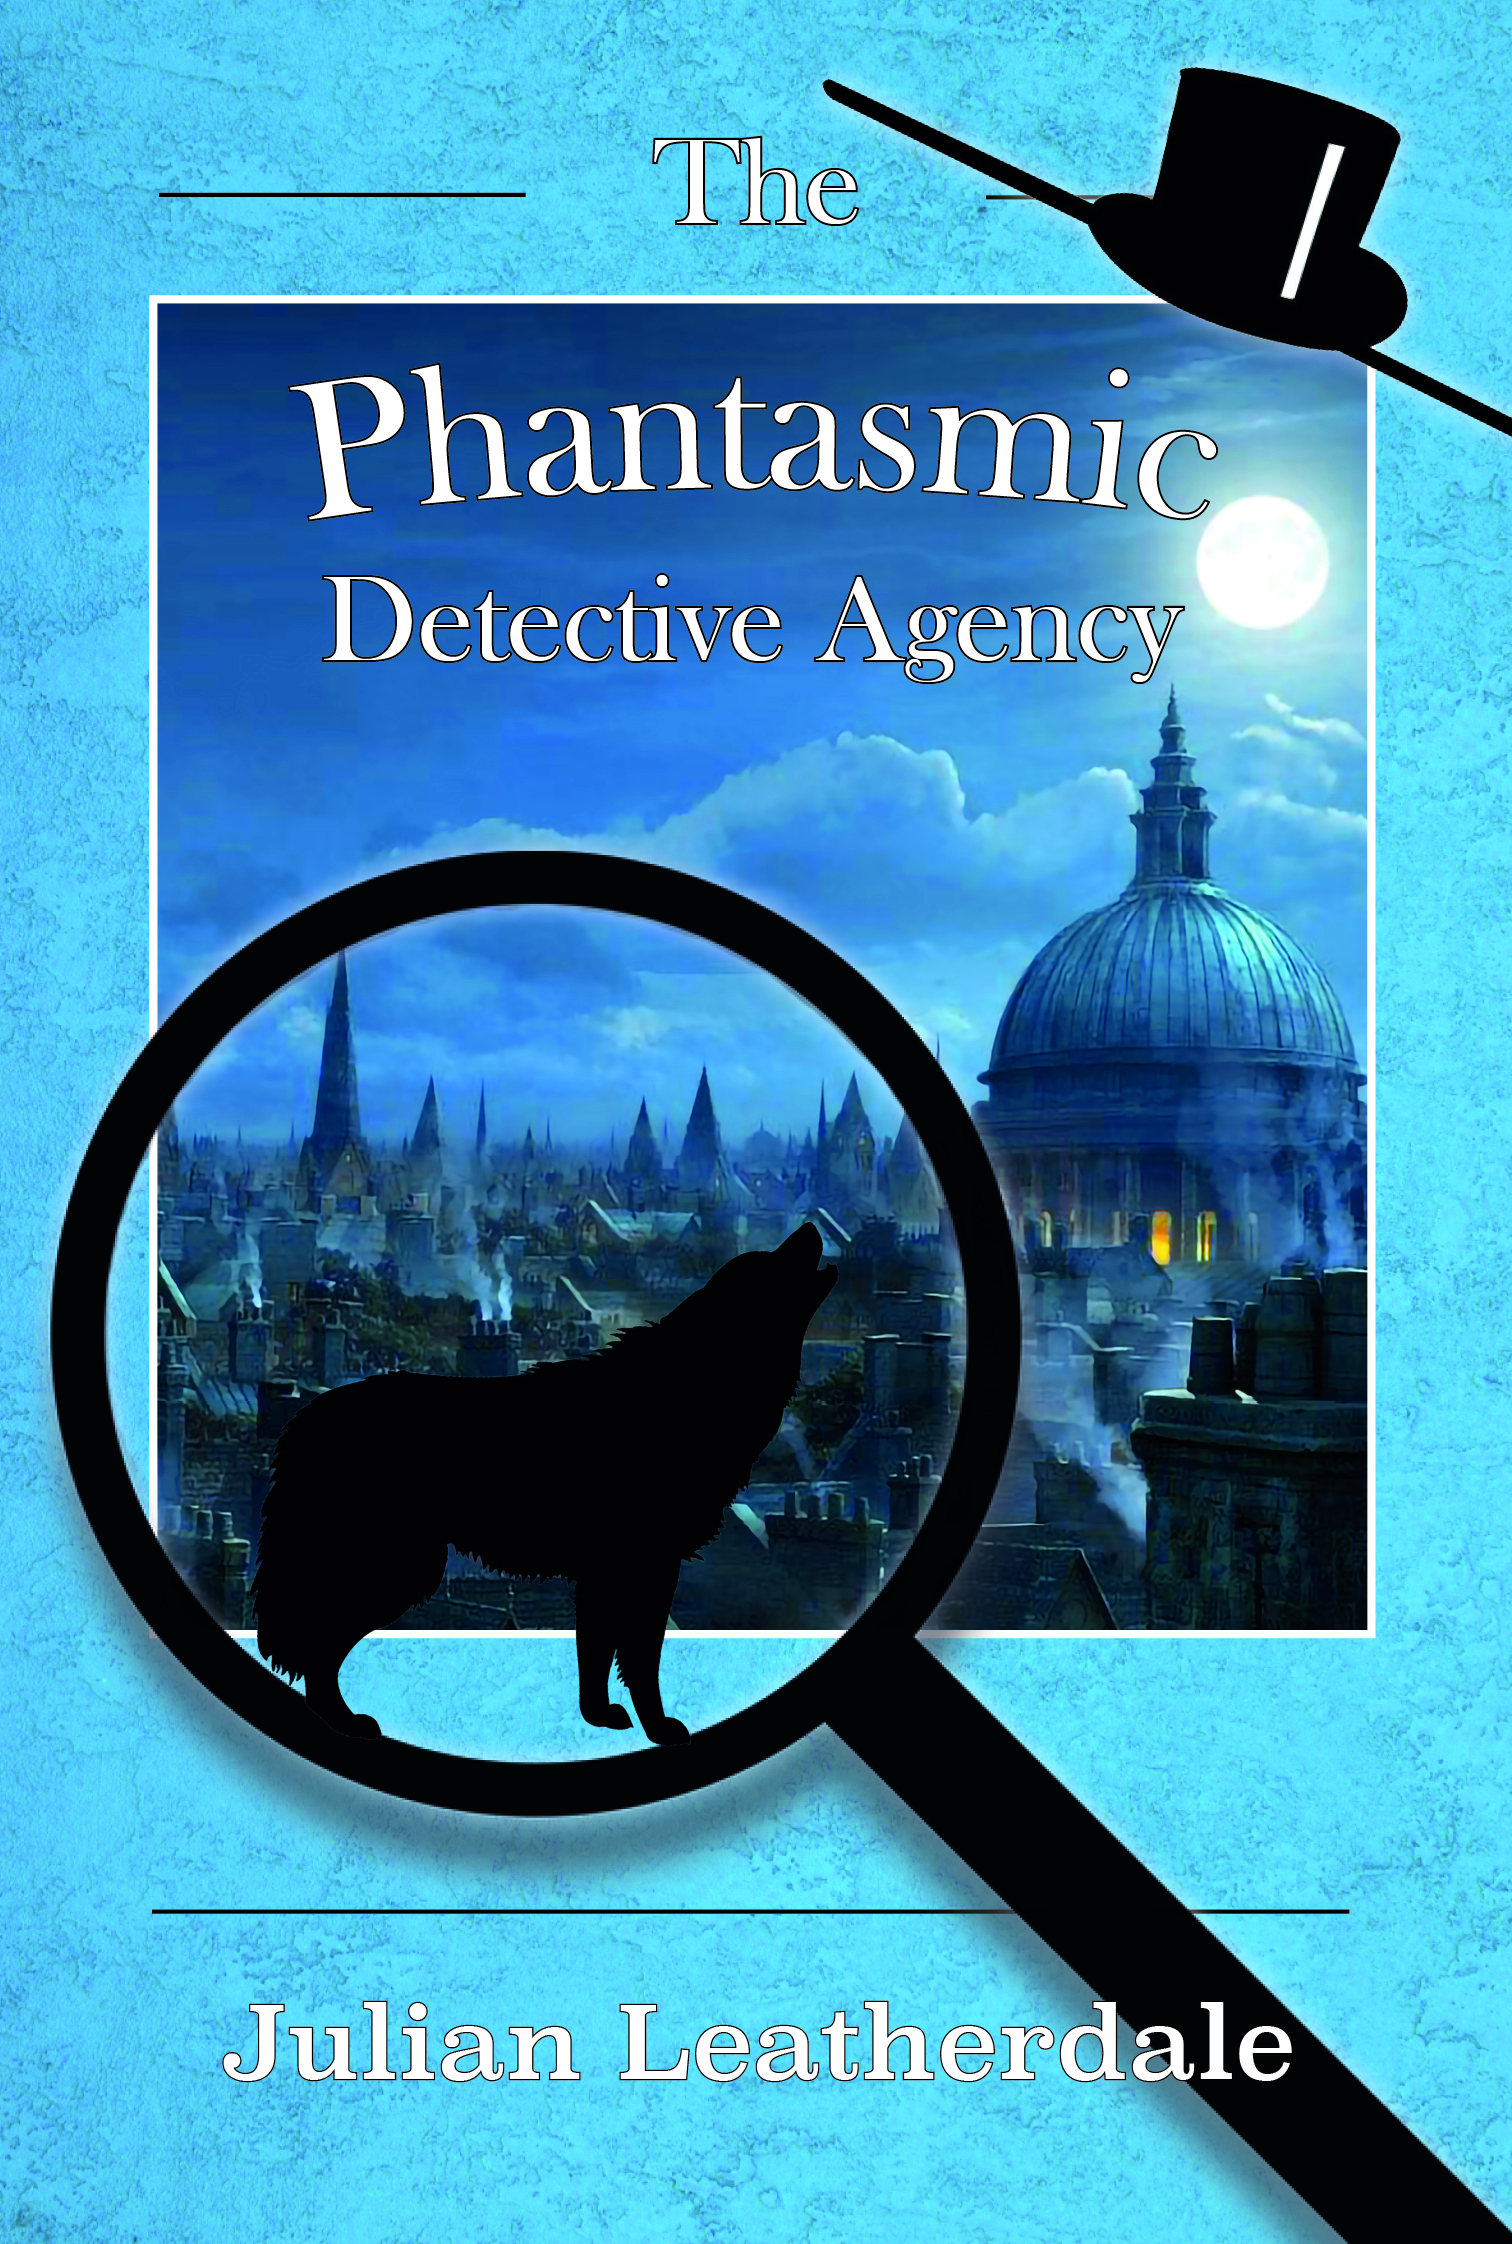 The Phantasmic Detective Agency